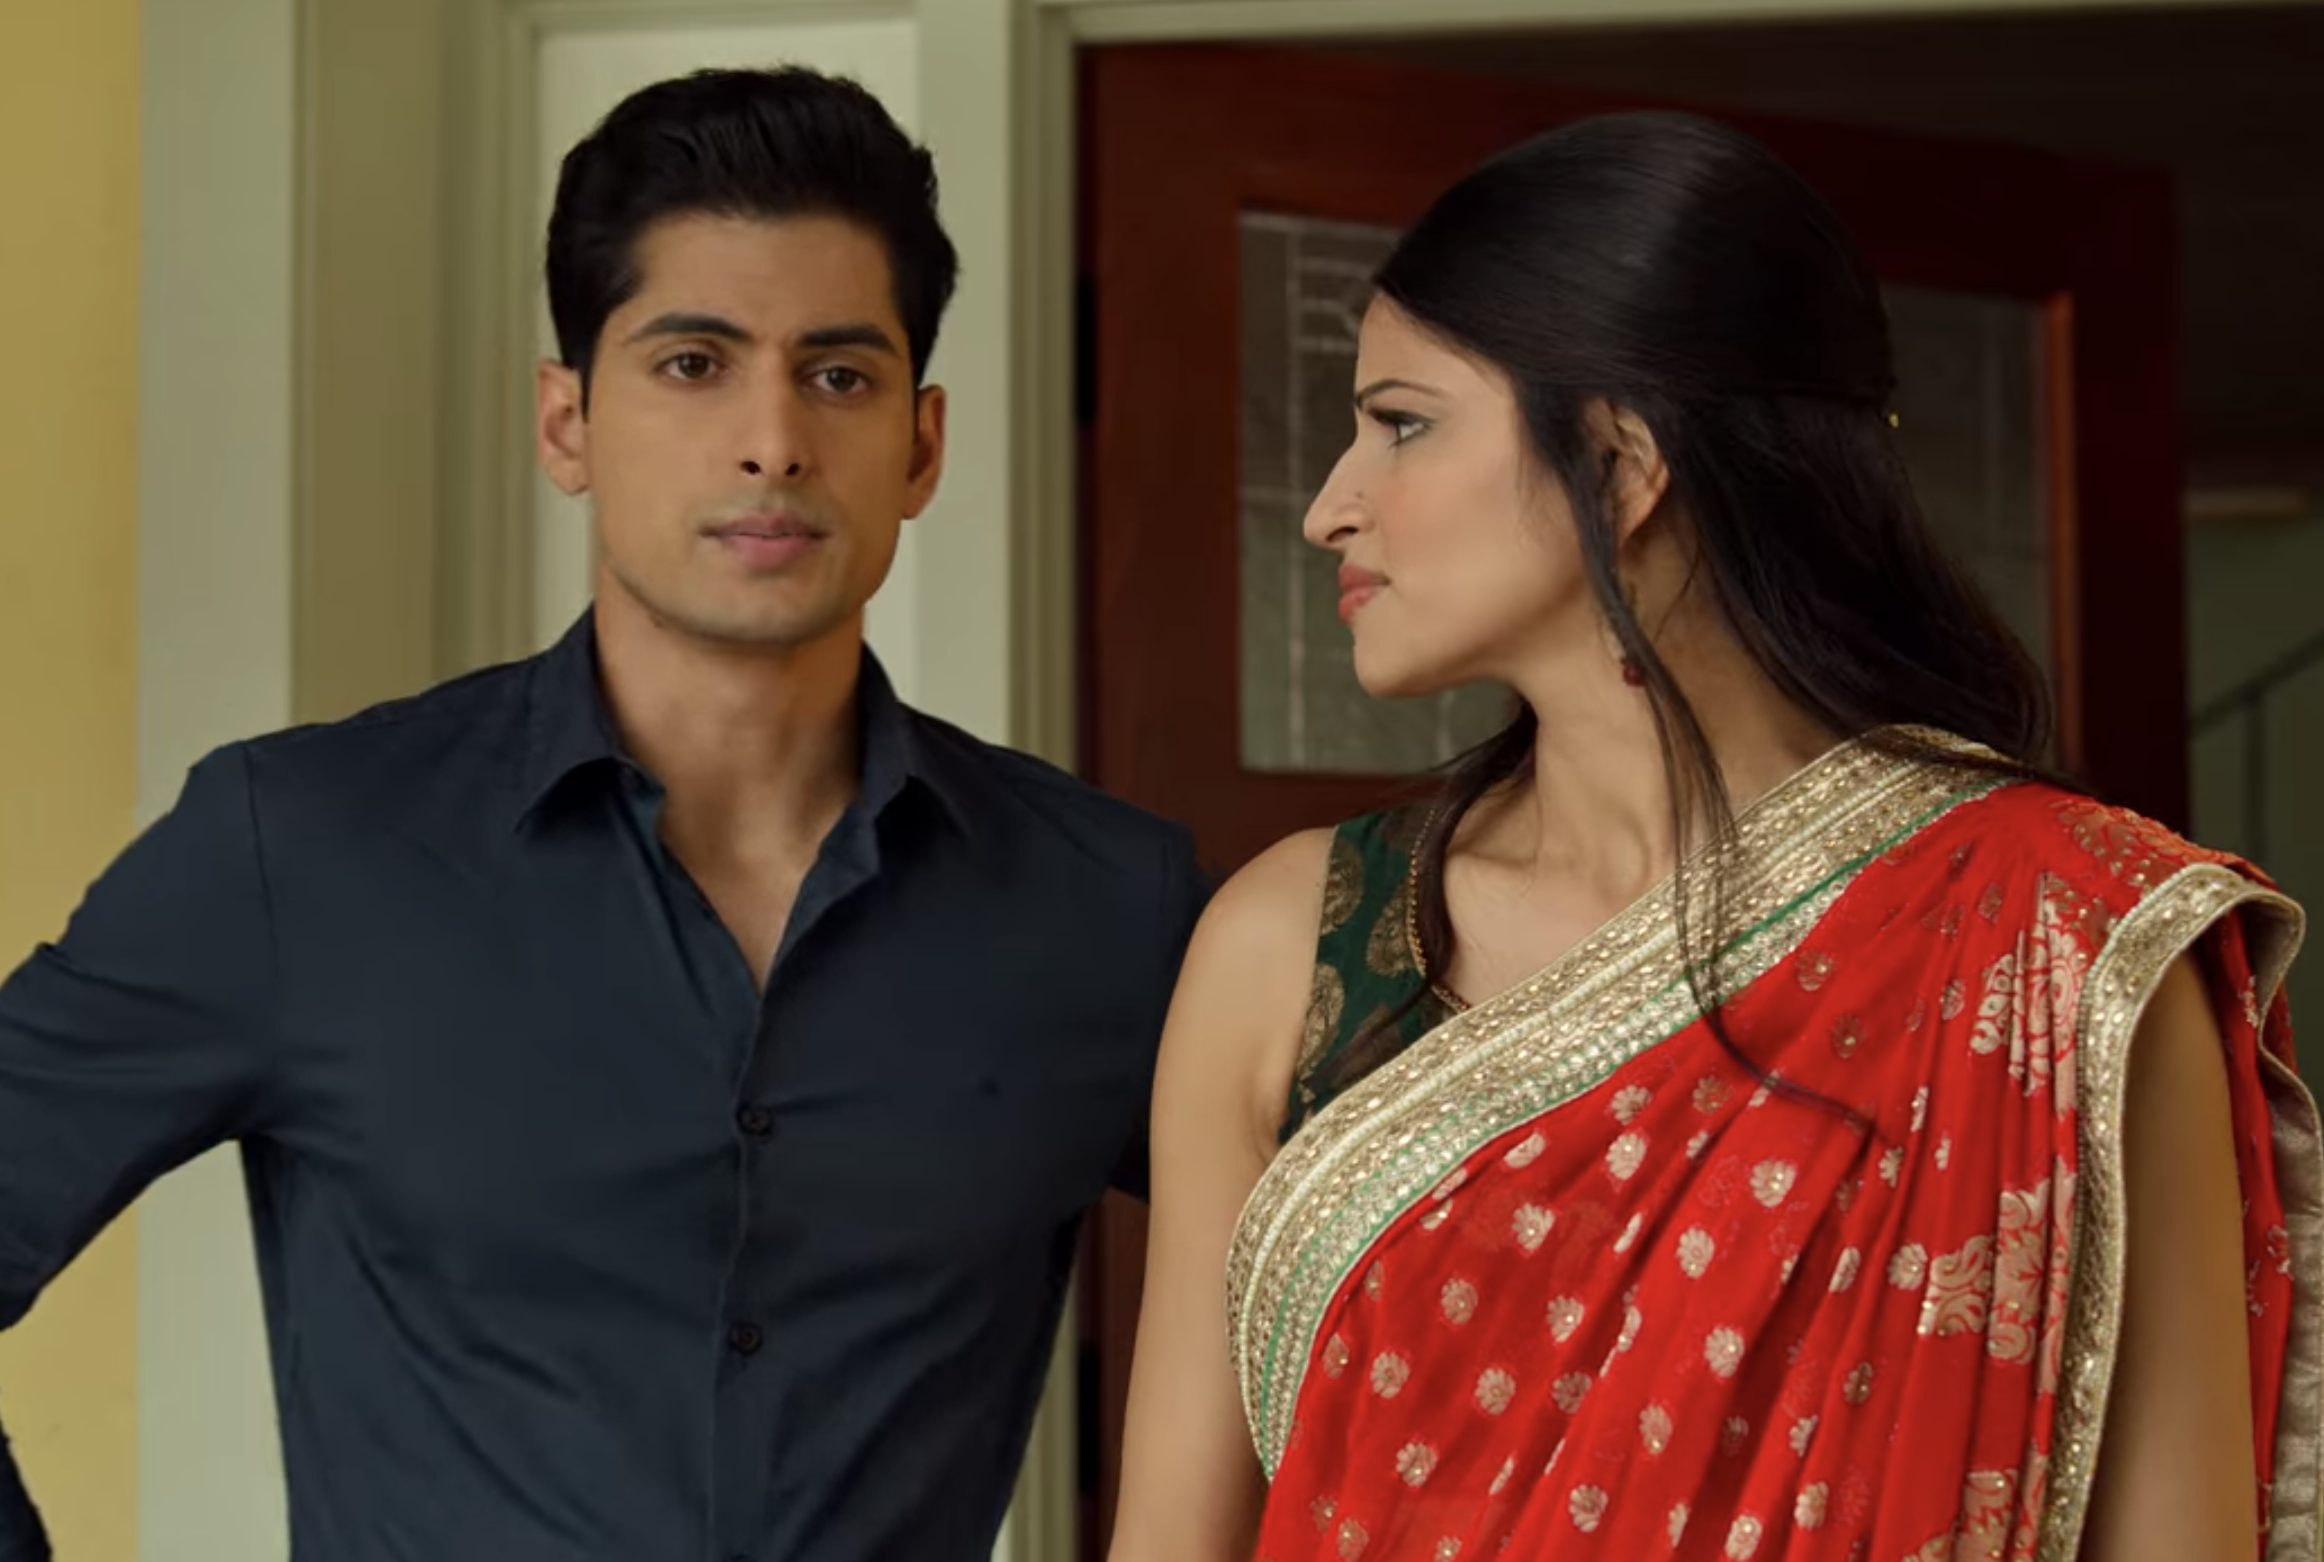 Kamala looking at Prashant, who is standing next to her